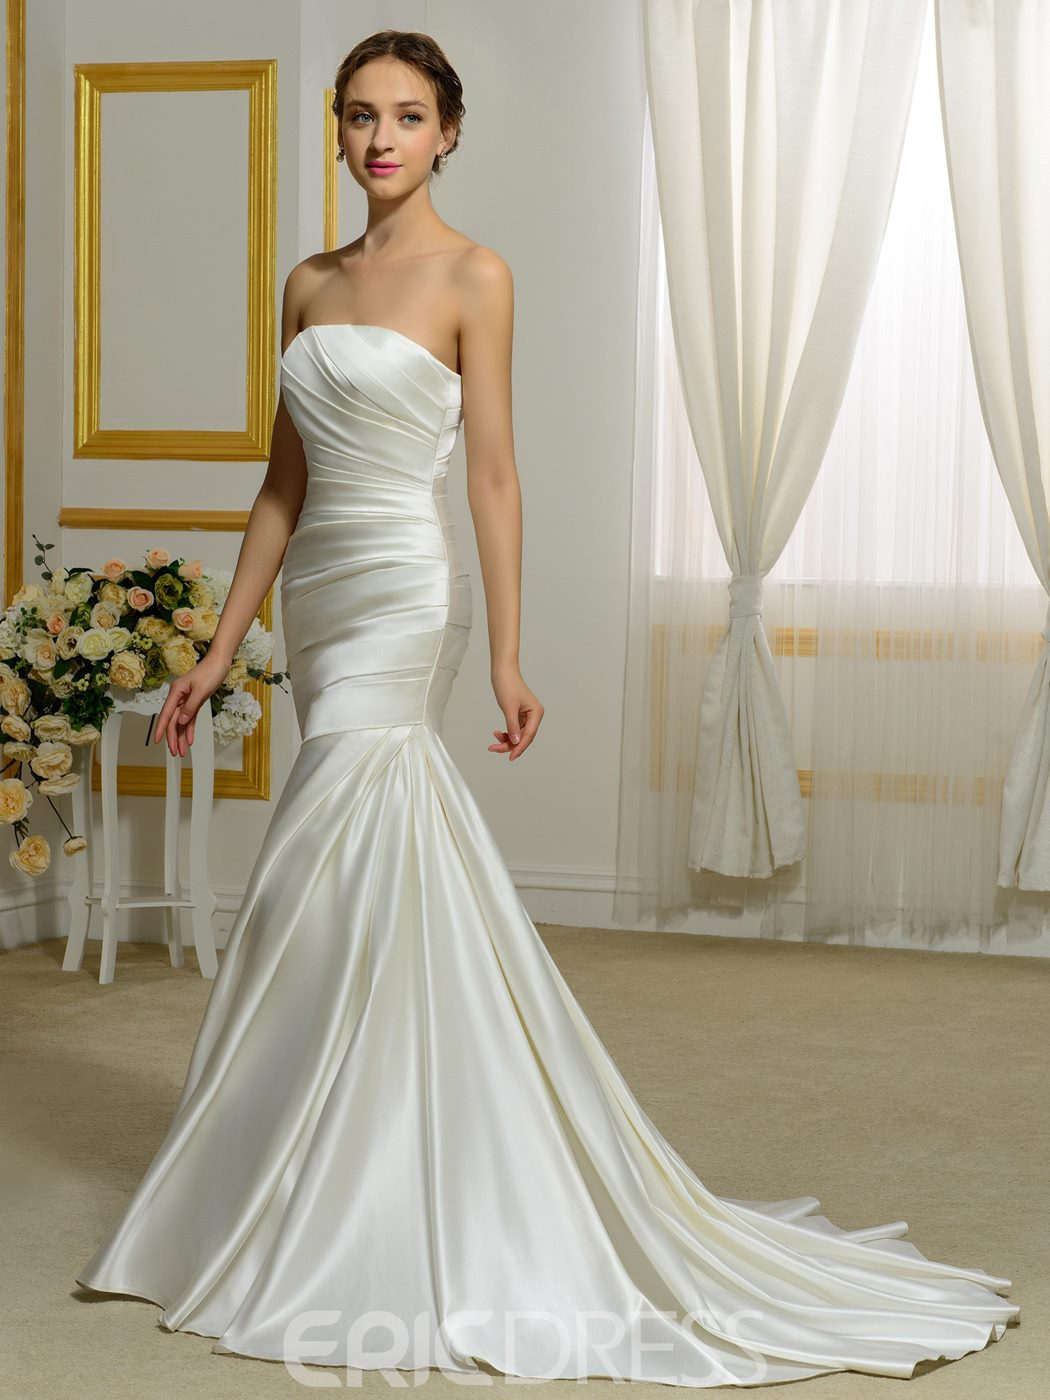 Ericdress High Quality Strapless Mermaid Wedding Dress